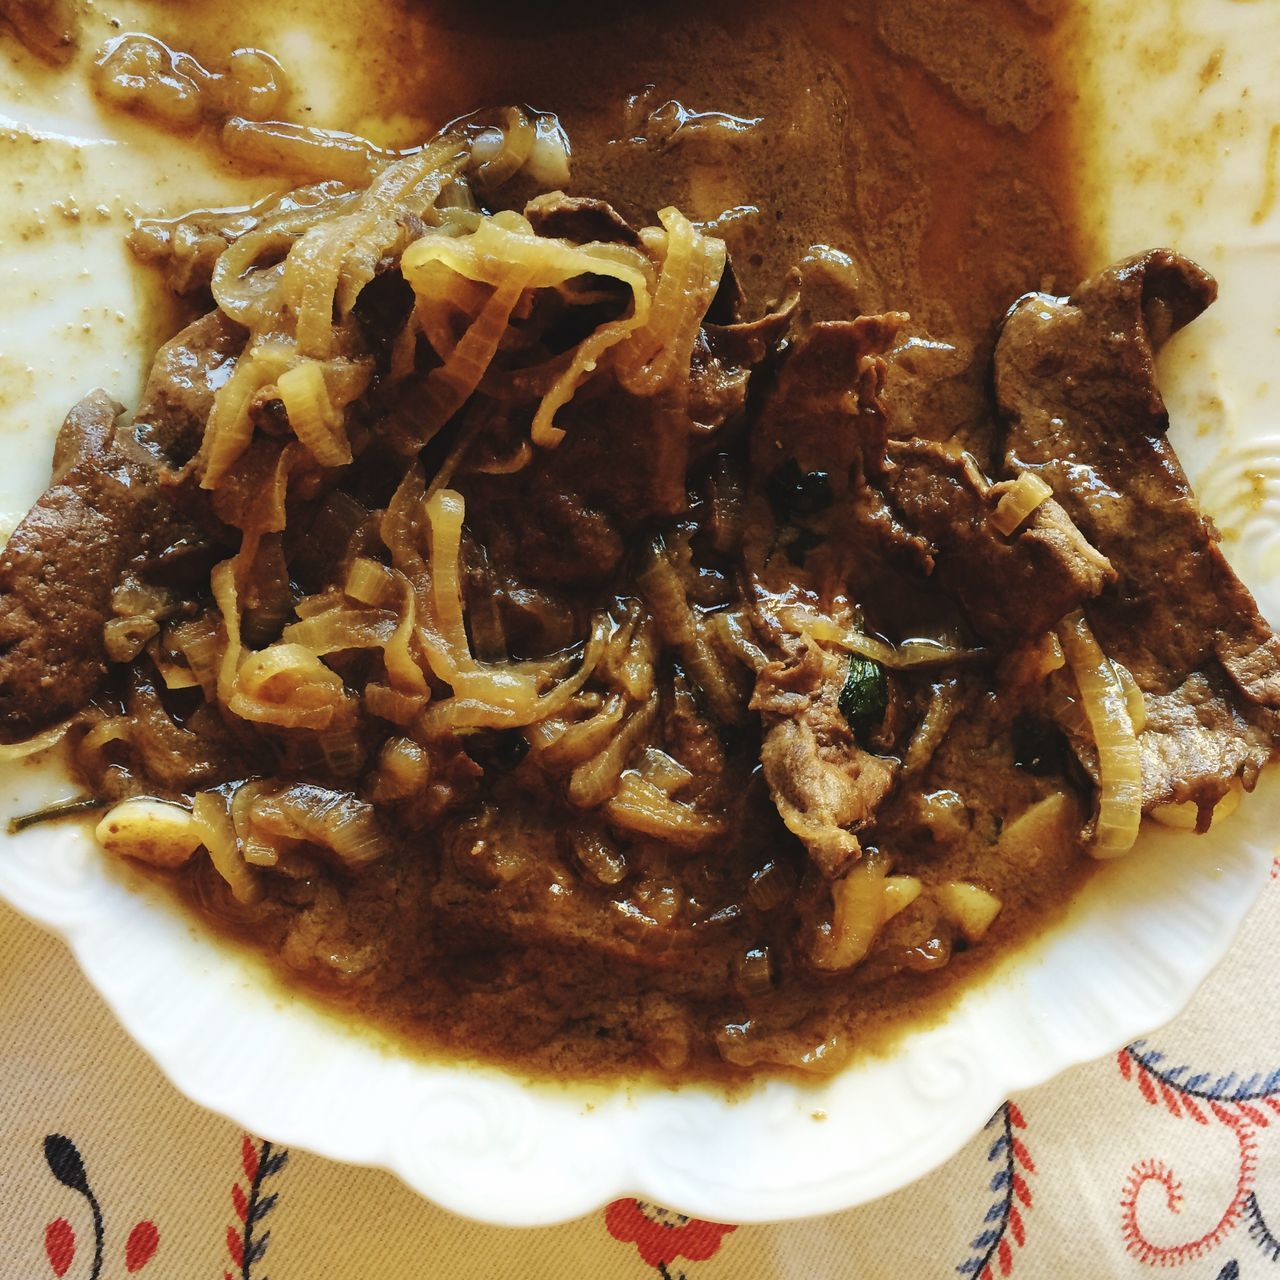 Meal Liver Onions And Liver